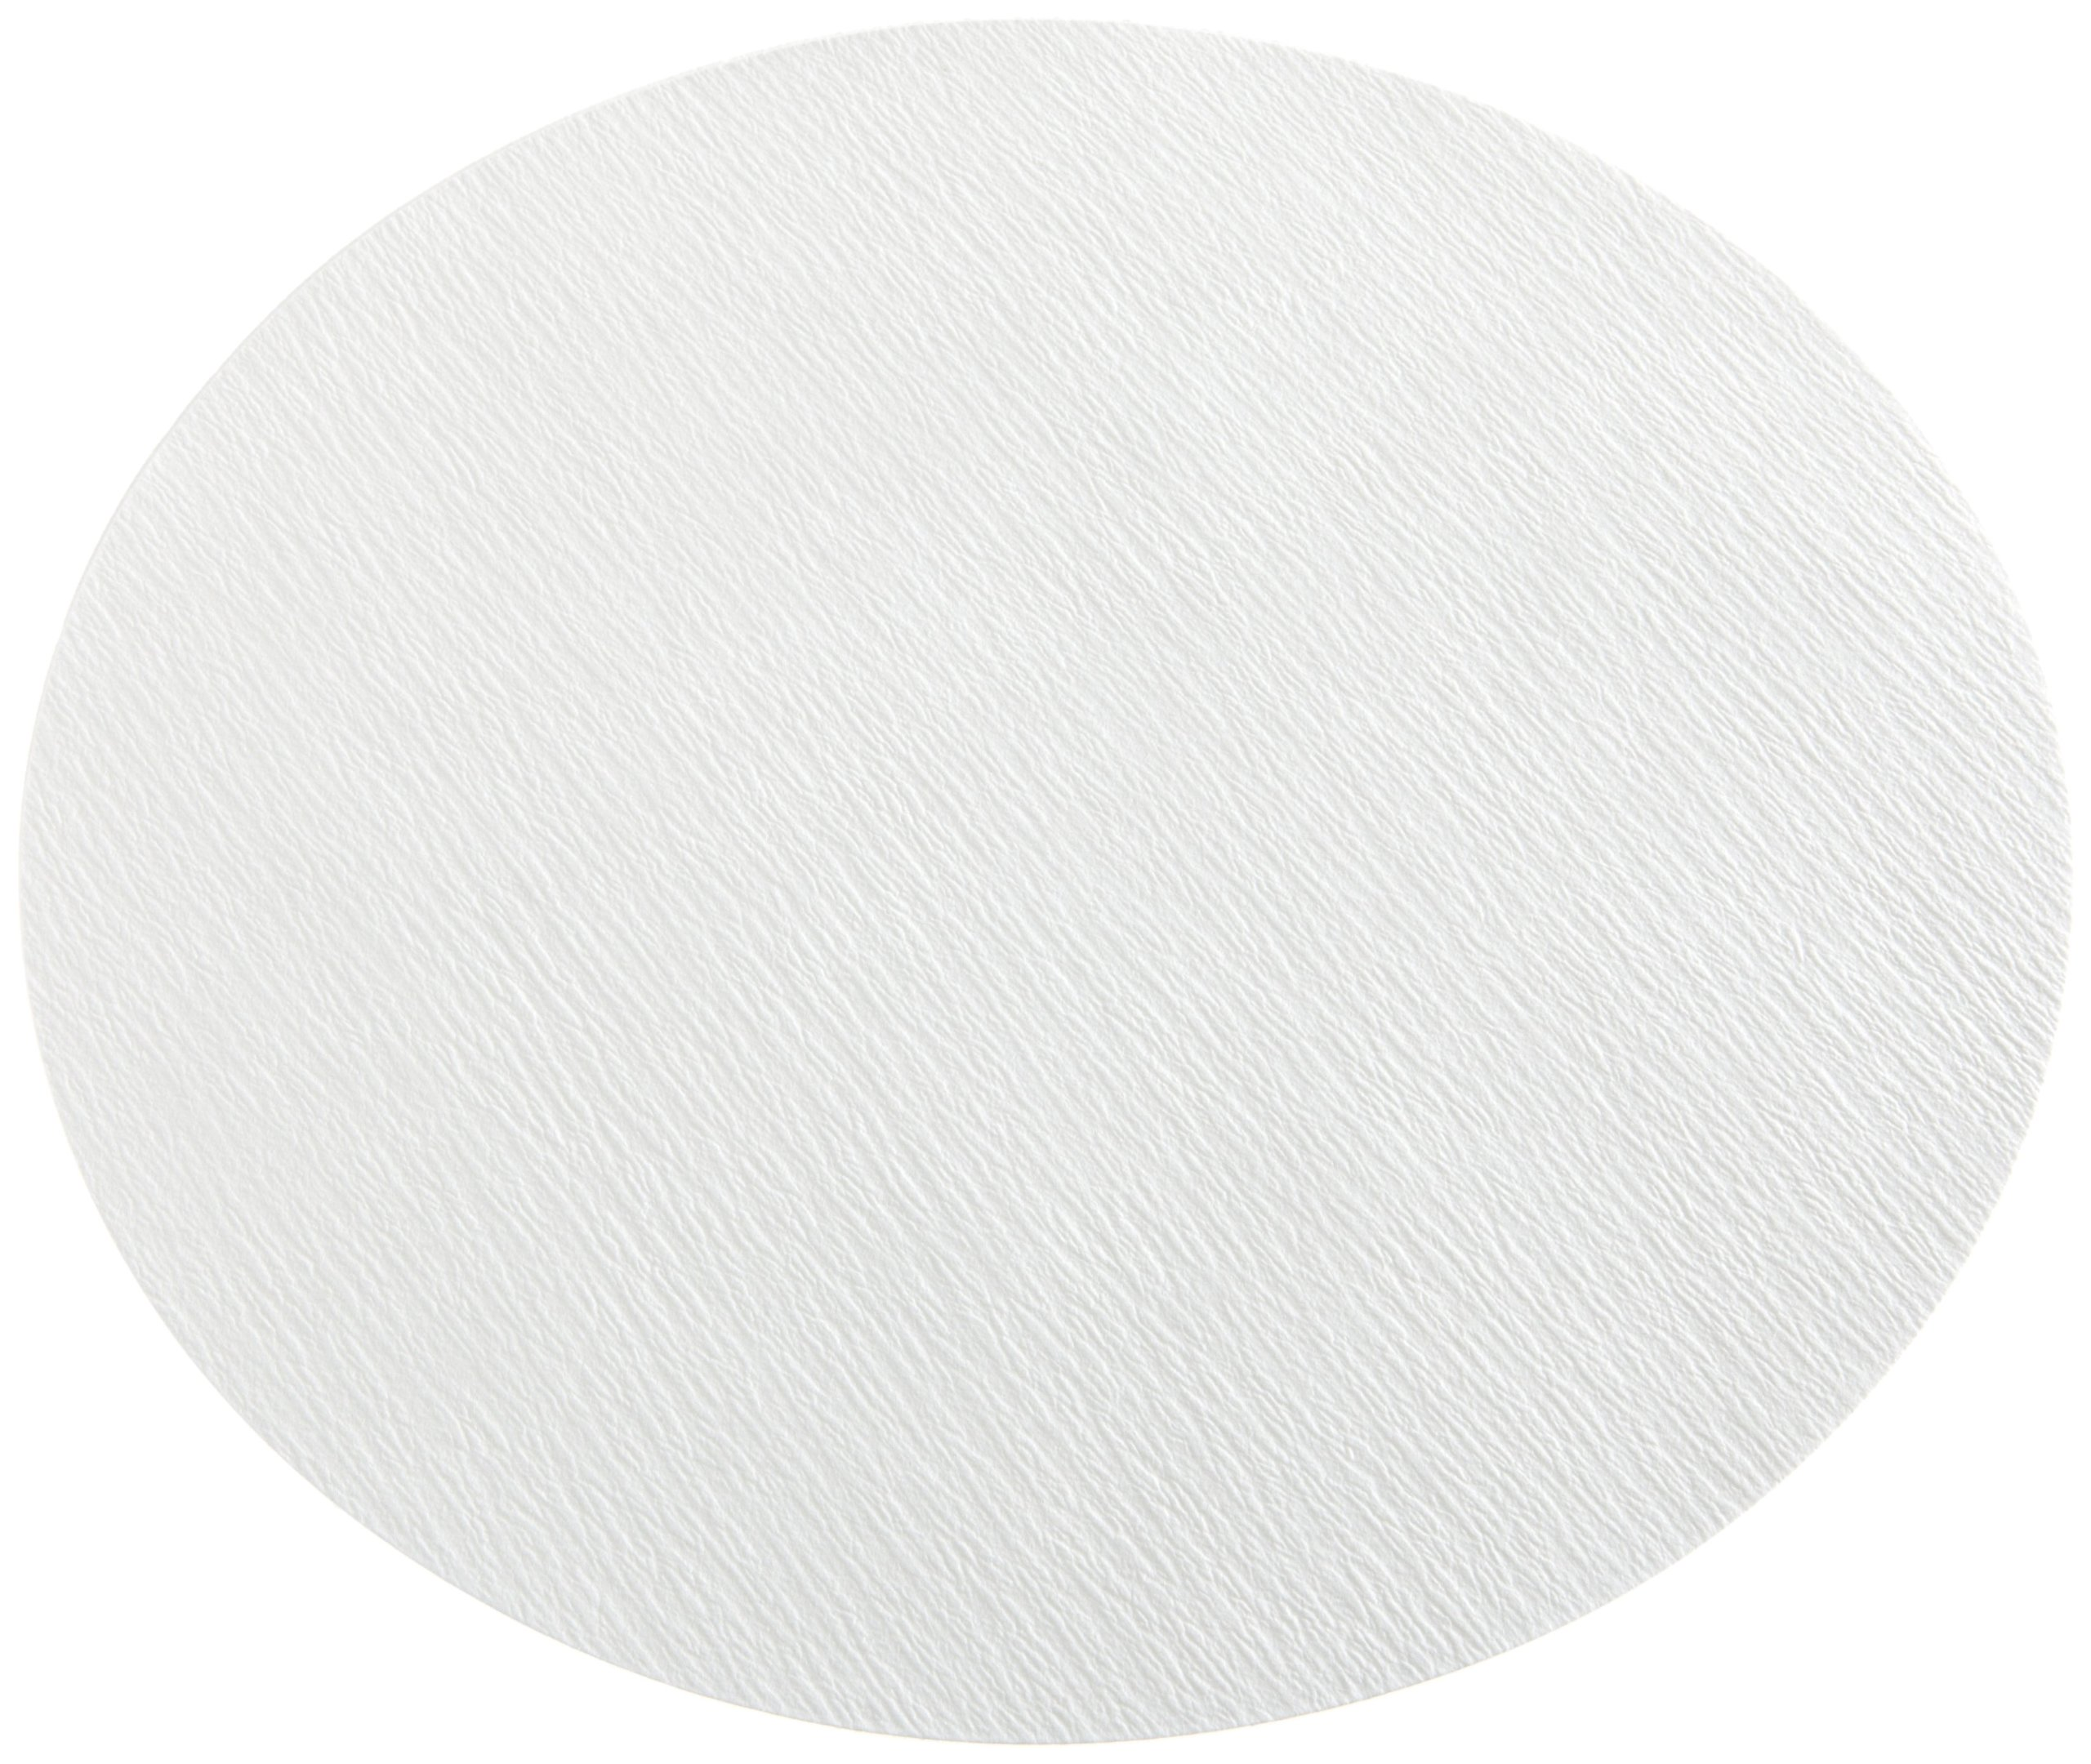 Bel-Art Cellulose Filter Paper Discs; for 24 in. I.D. Funnels (Pack of 100) (H14632-0024) by SP Scienceware